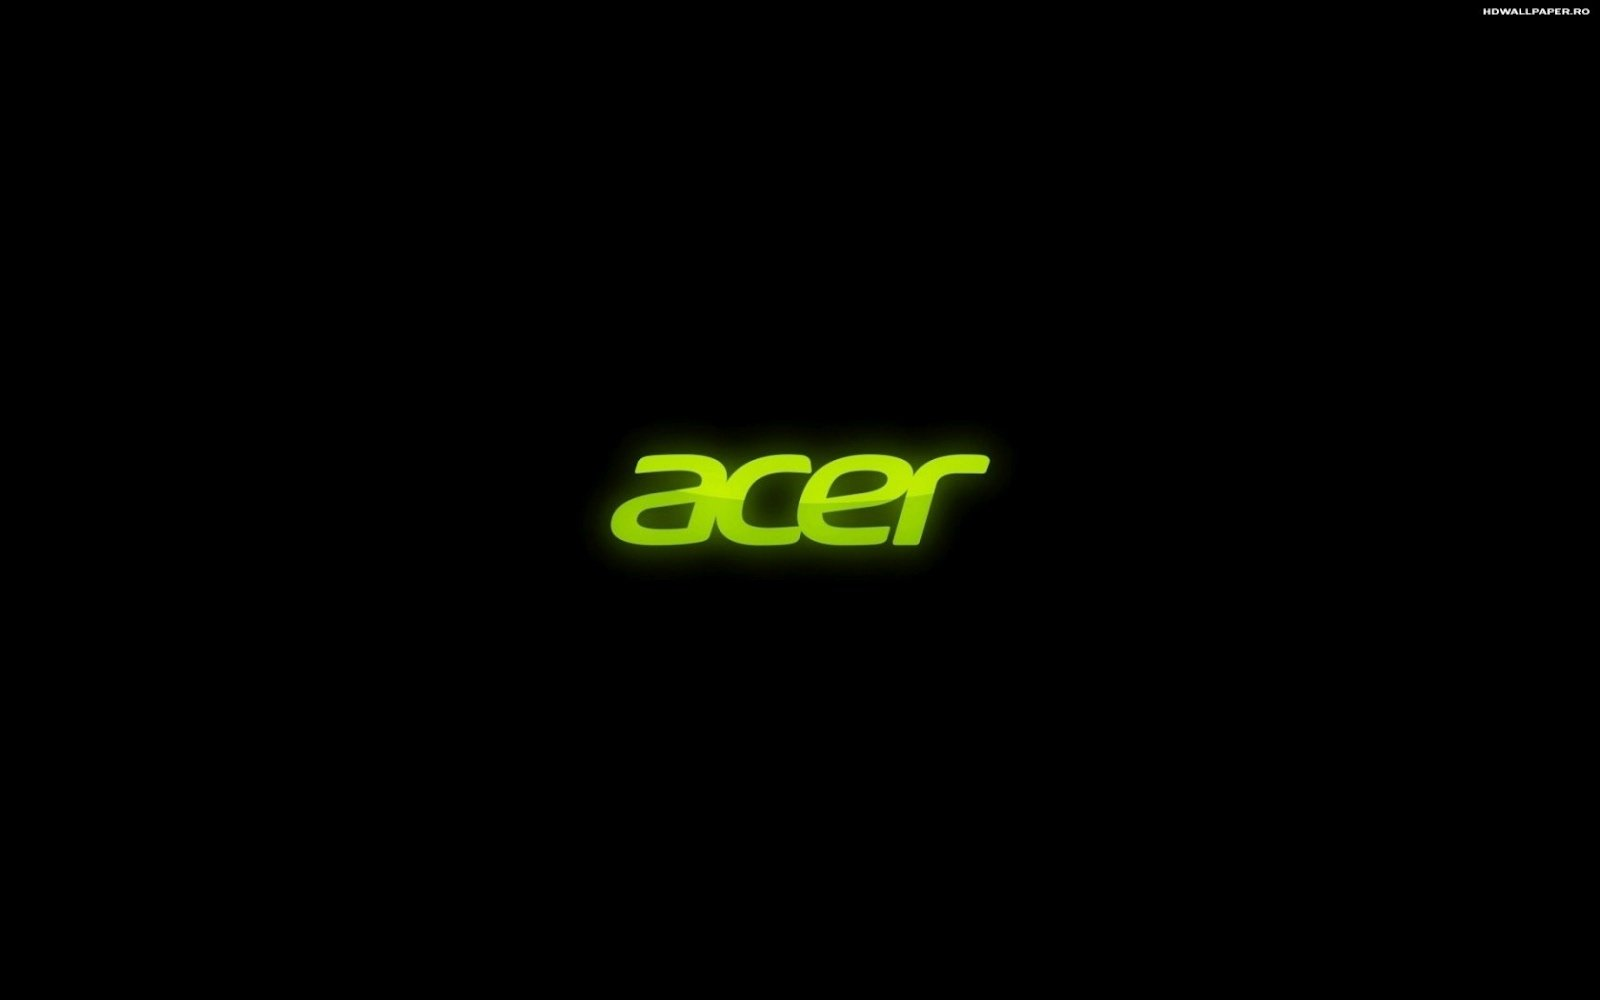 Acer Logo 3D HD Wallpaper 1600x1000